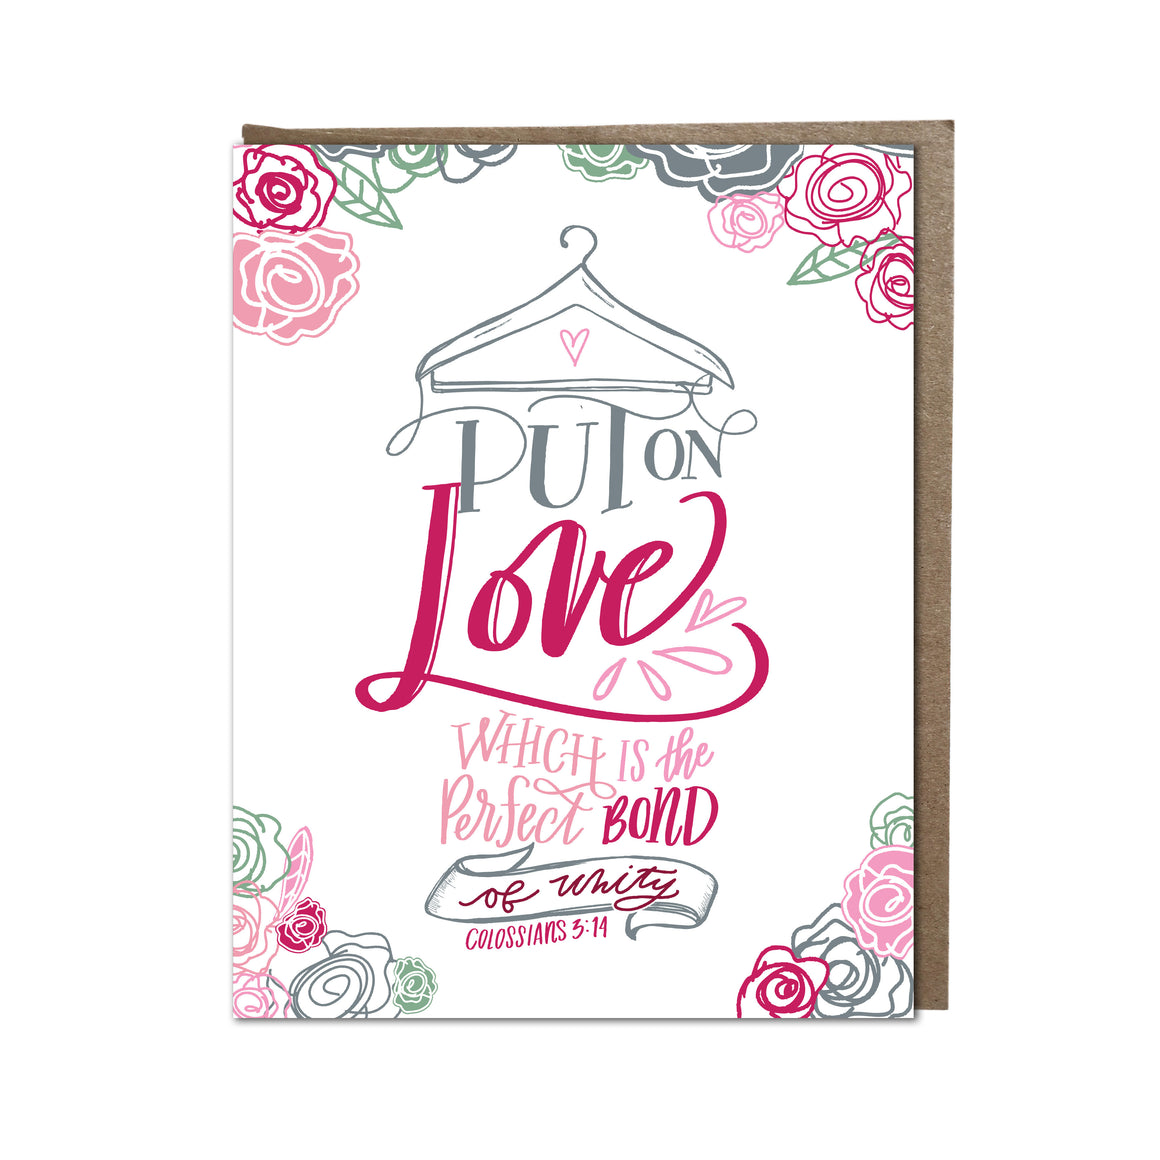 """Put on Love"" card"